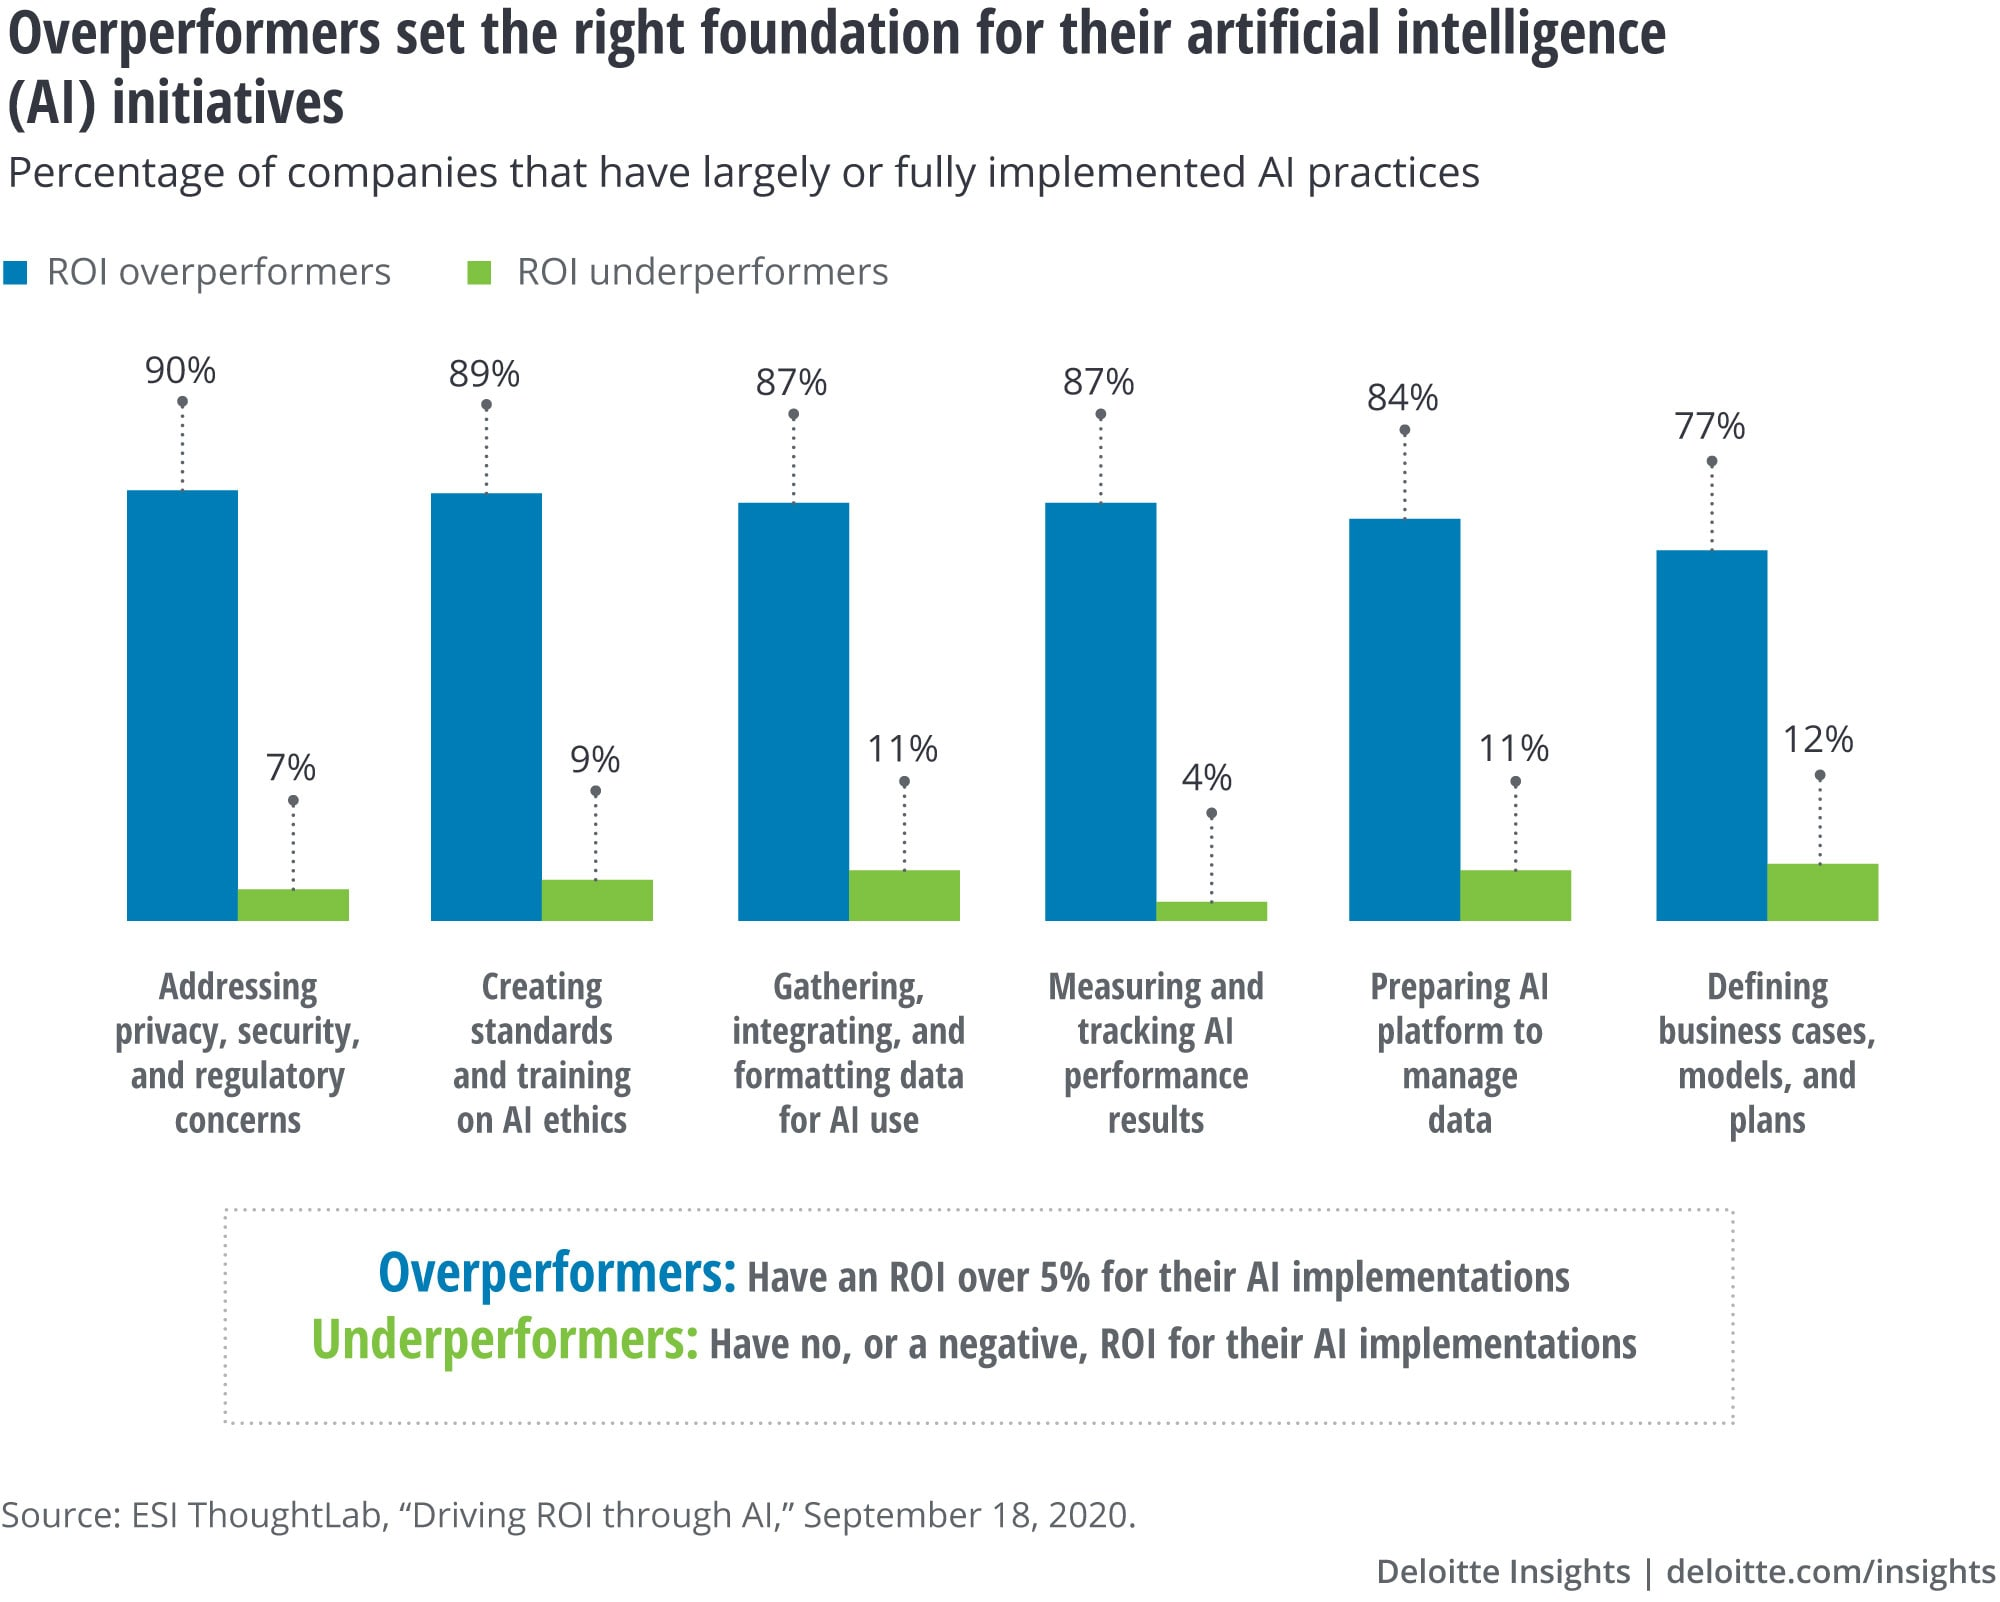 Overperformers set the right foundation for their AI initiatives